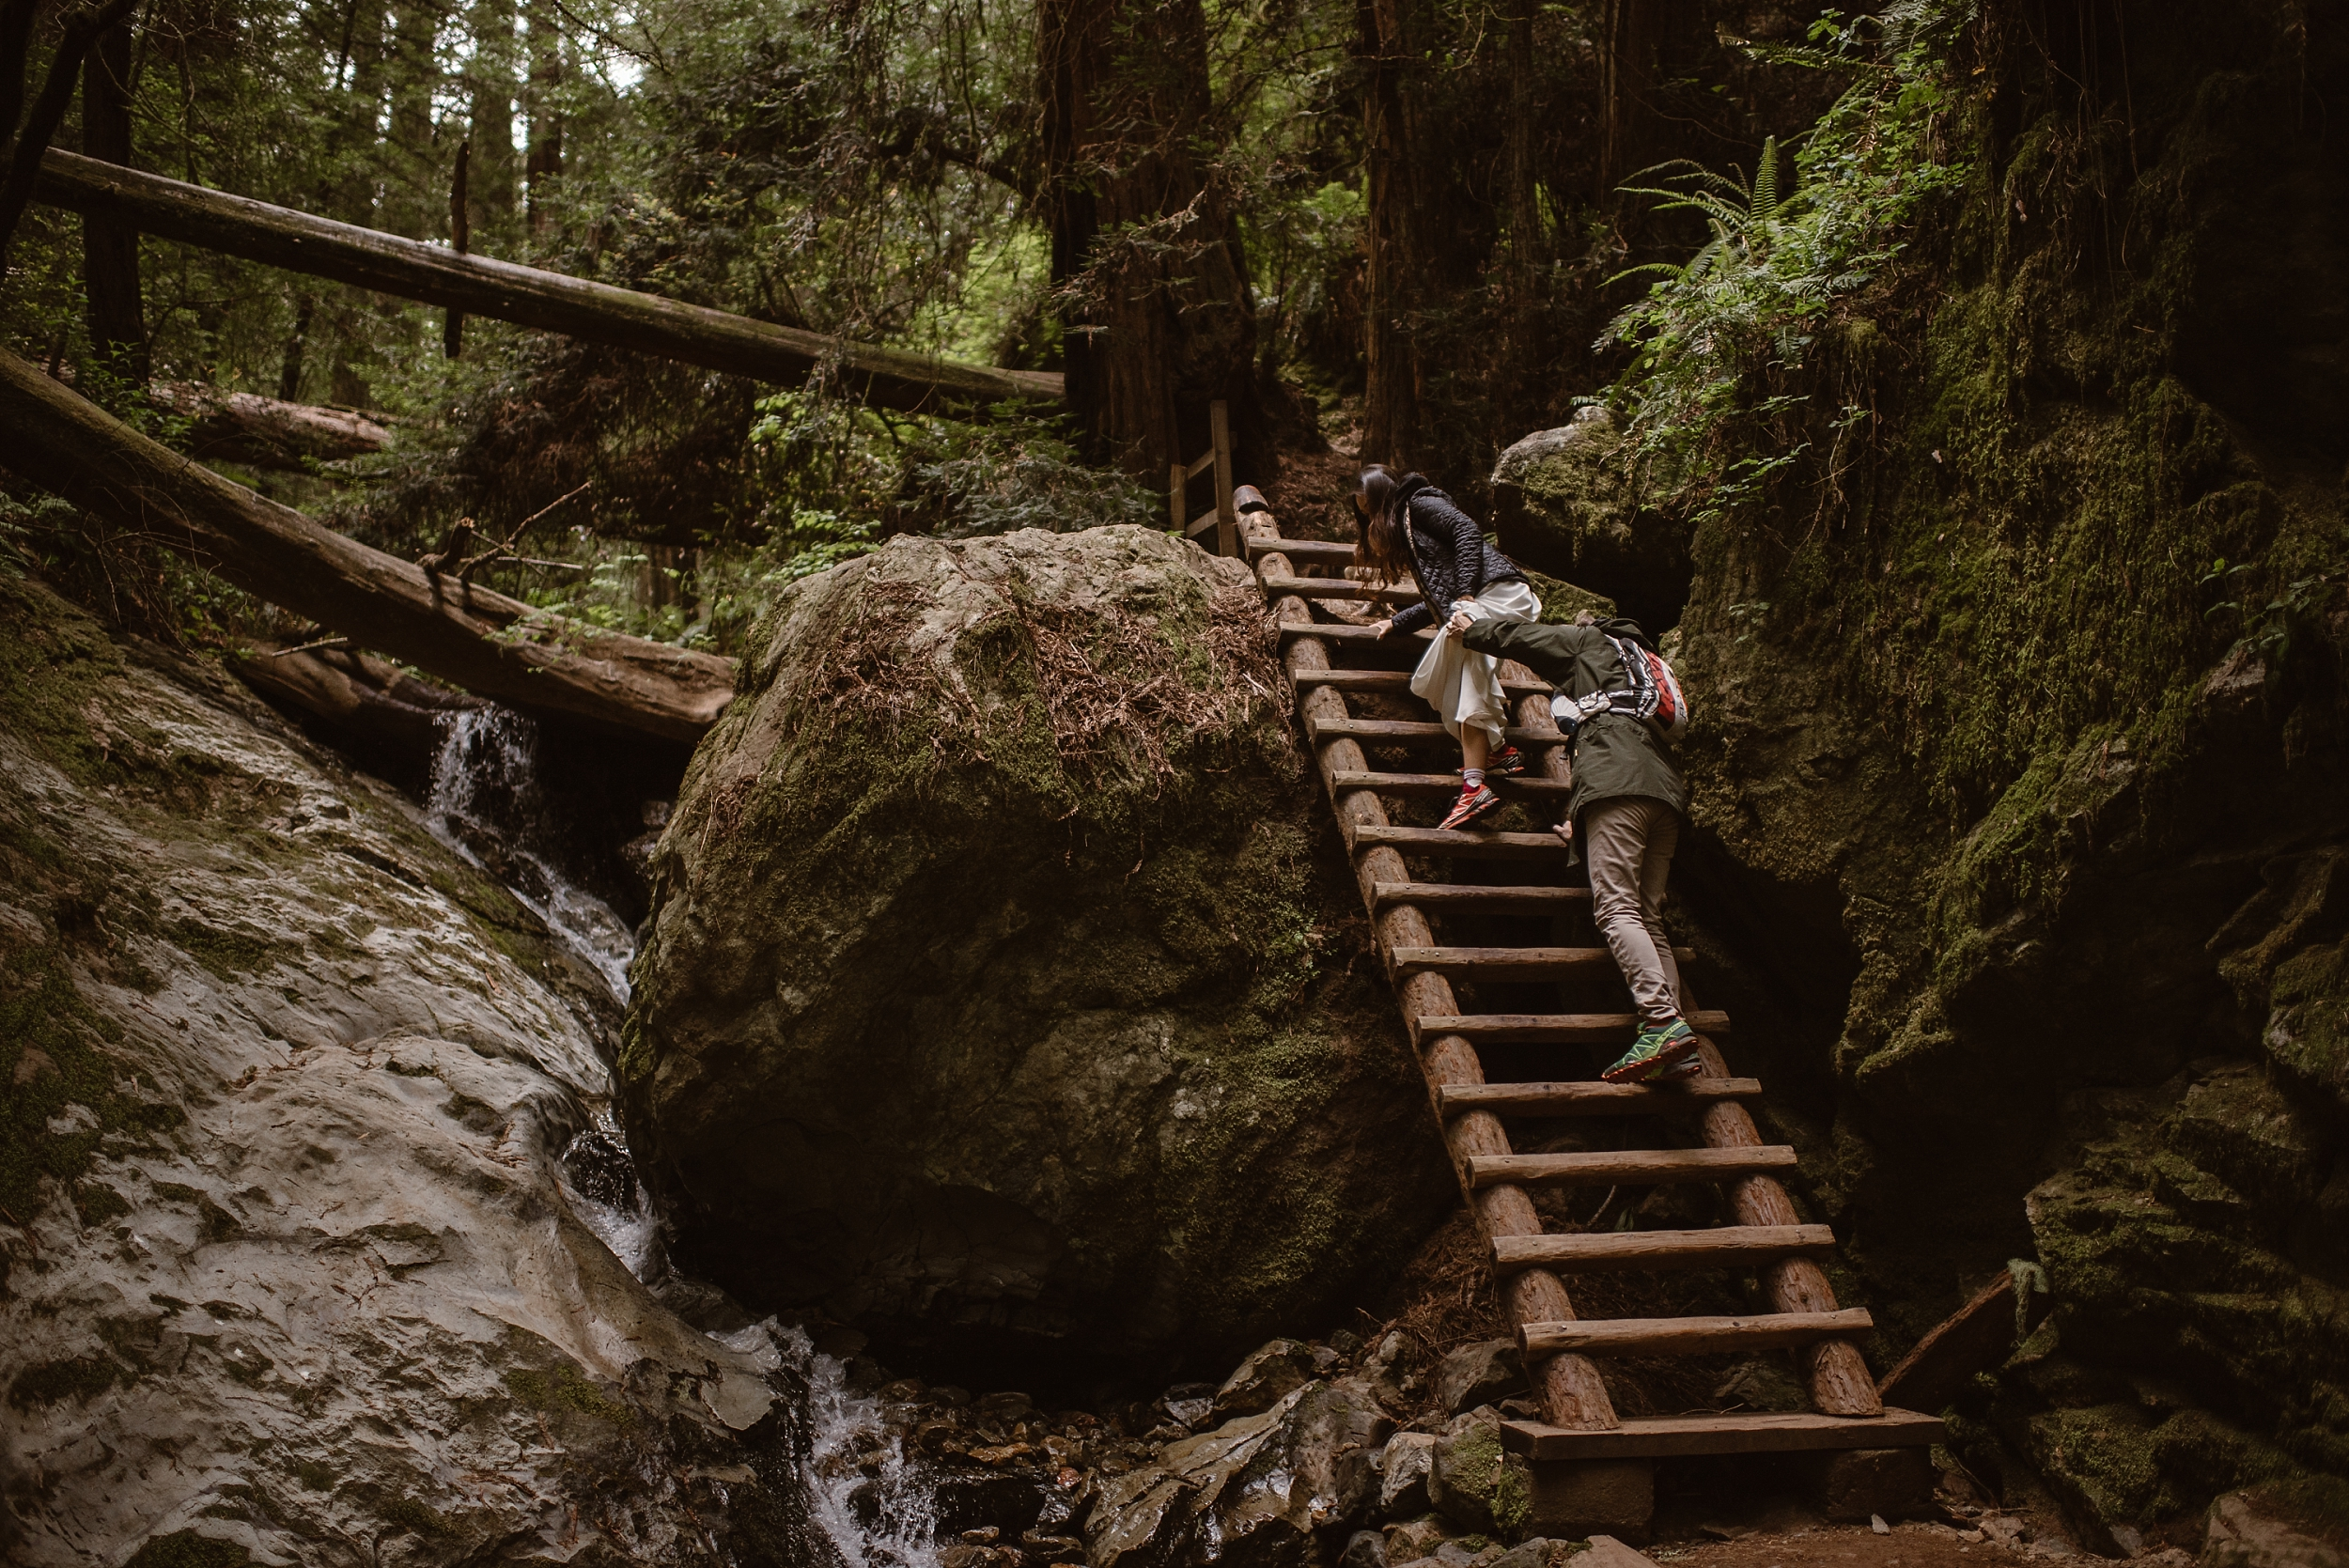 A bride and groom climb up a wooden ladder laying over a mossy rock in an moody, misty Oregon forest. There's tons of green, lush foliage surrounding the couple as they hike through an area with a mini waterfall.